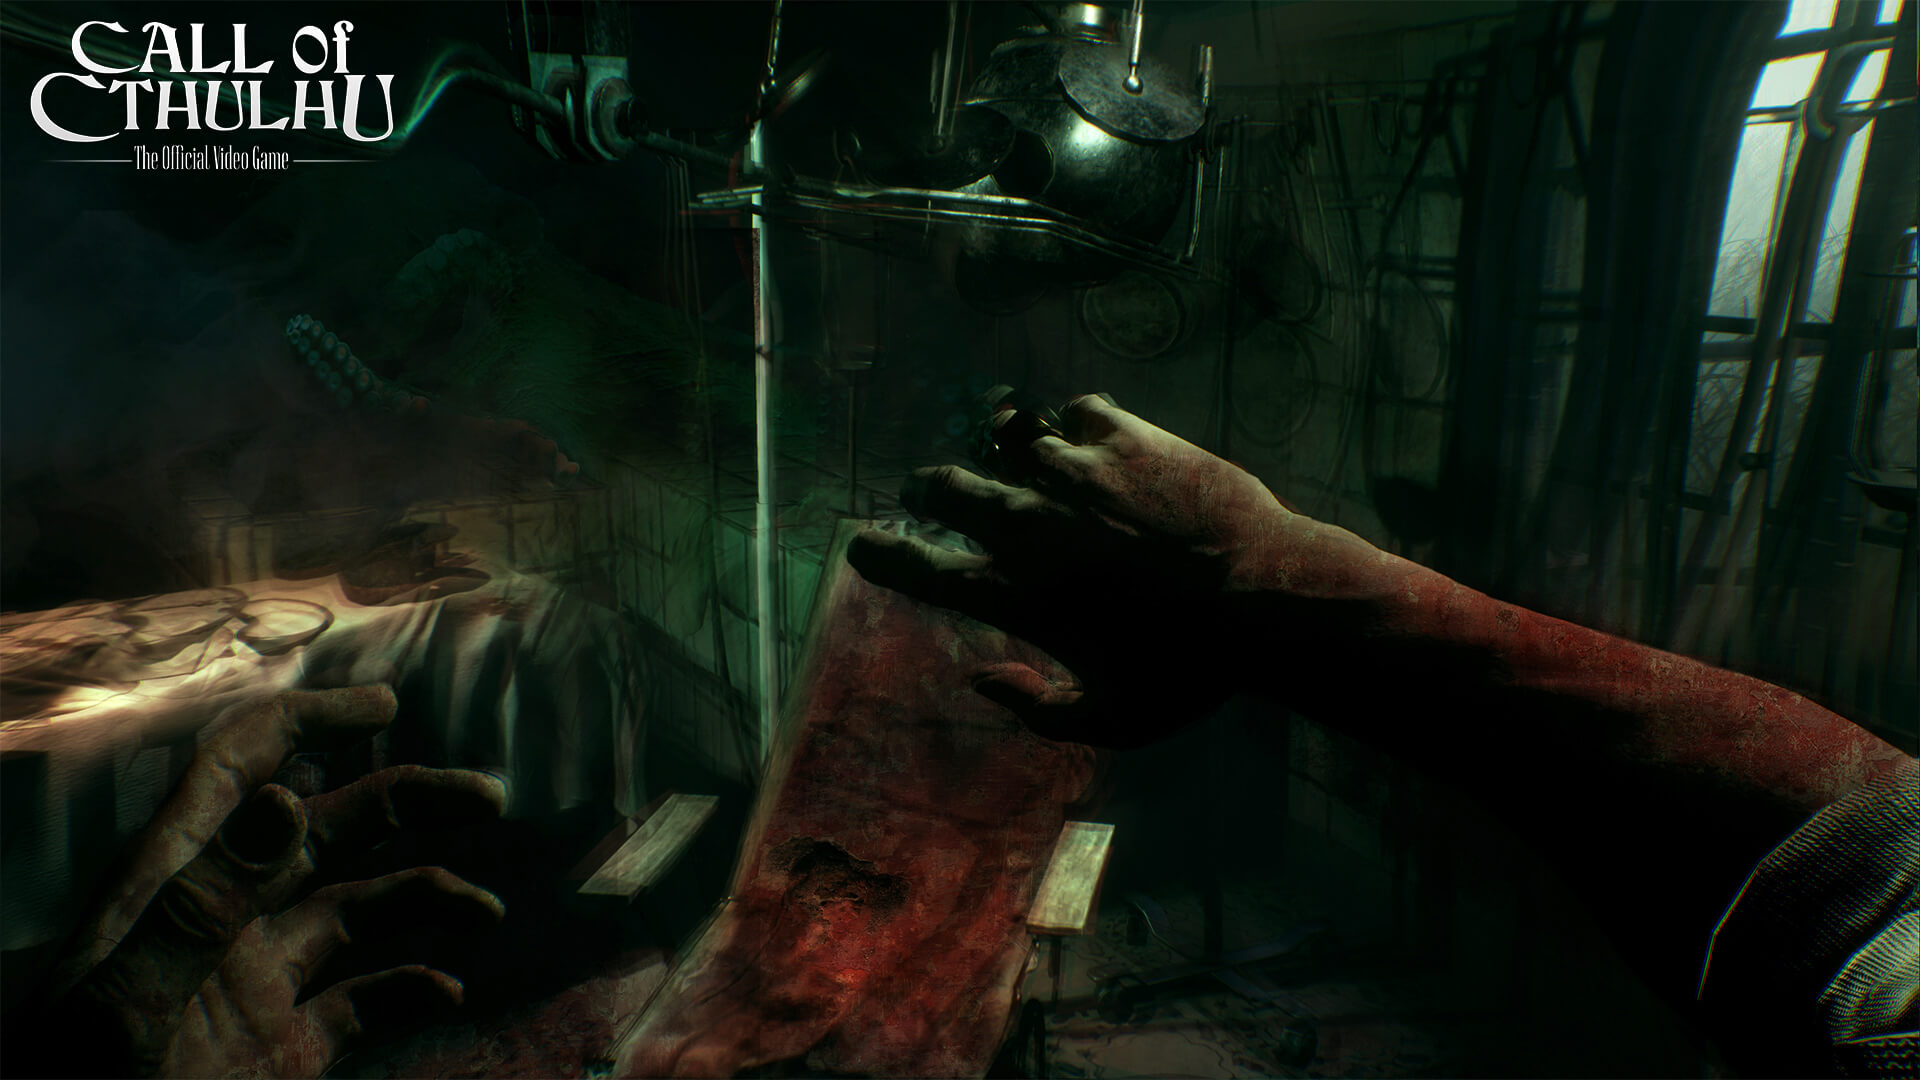 Call of Cthulhu Review image 2